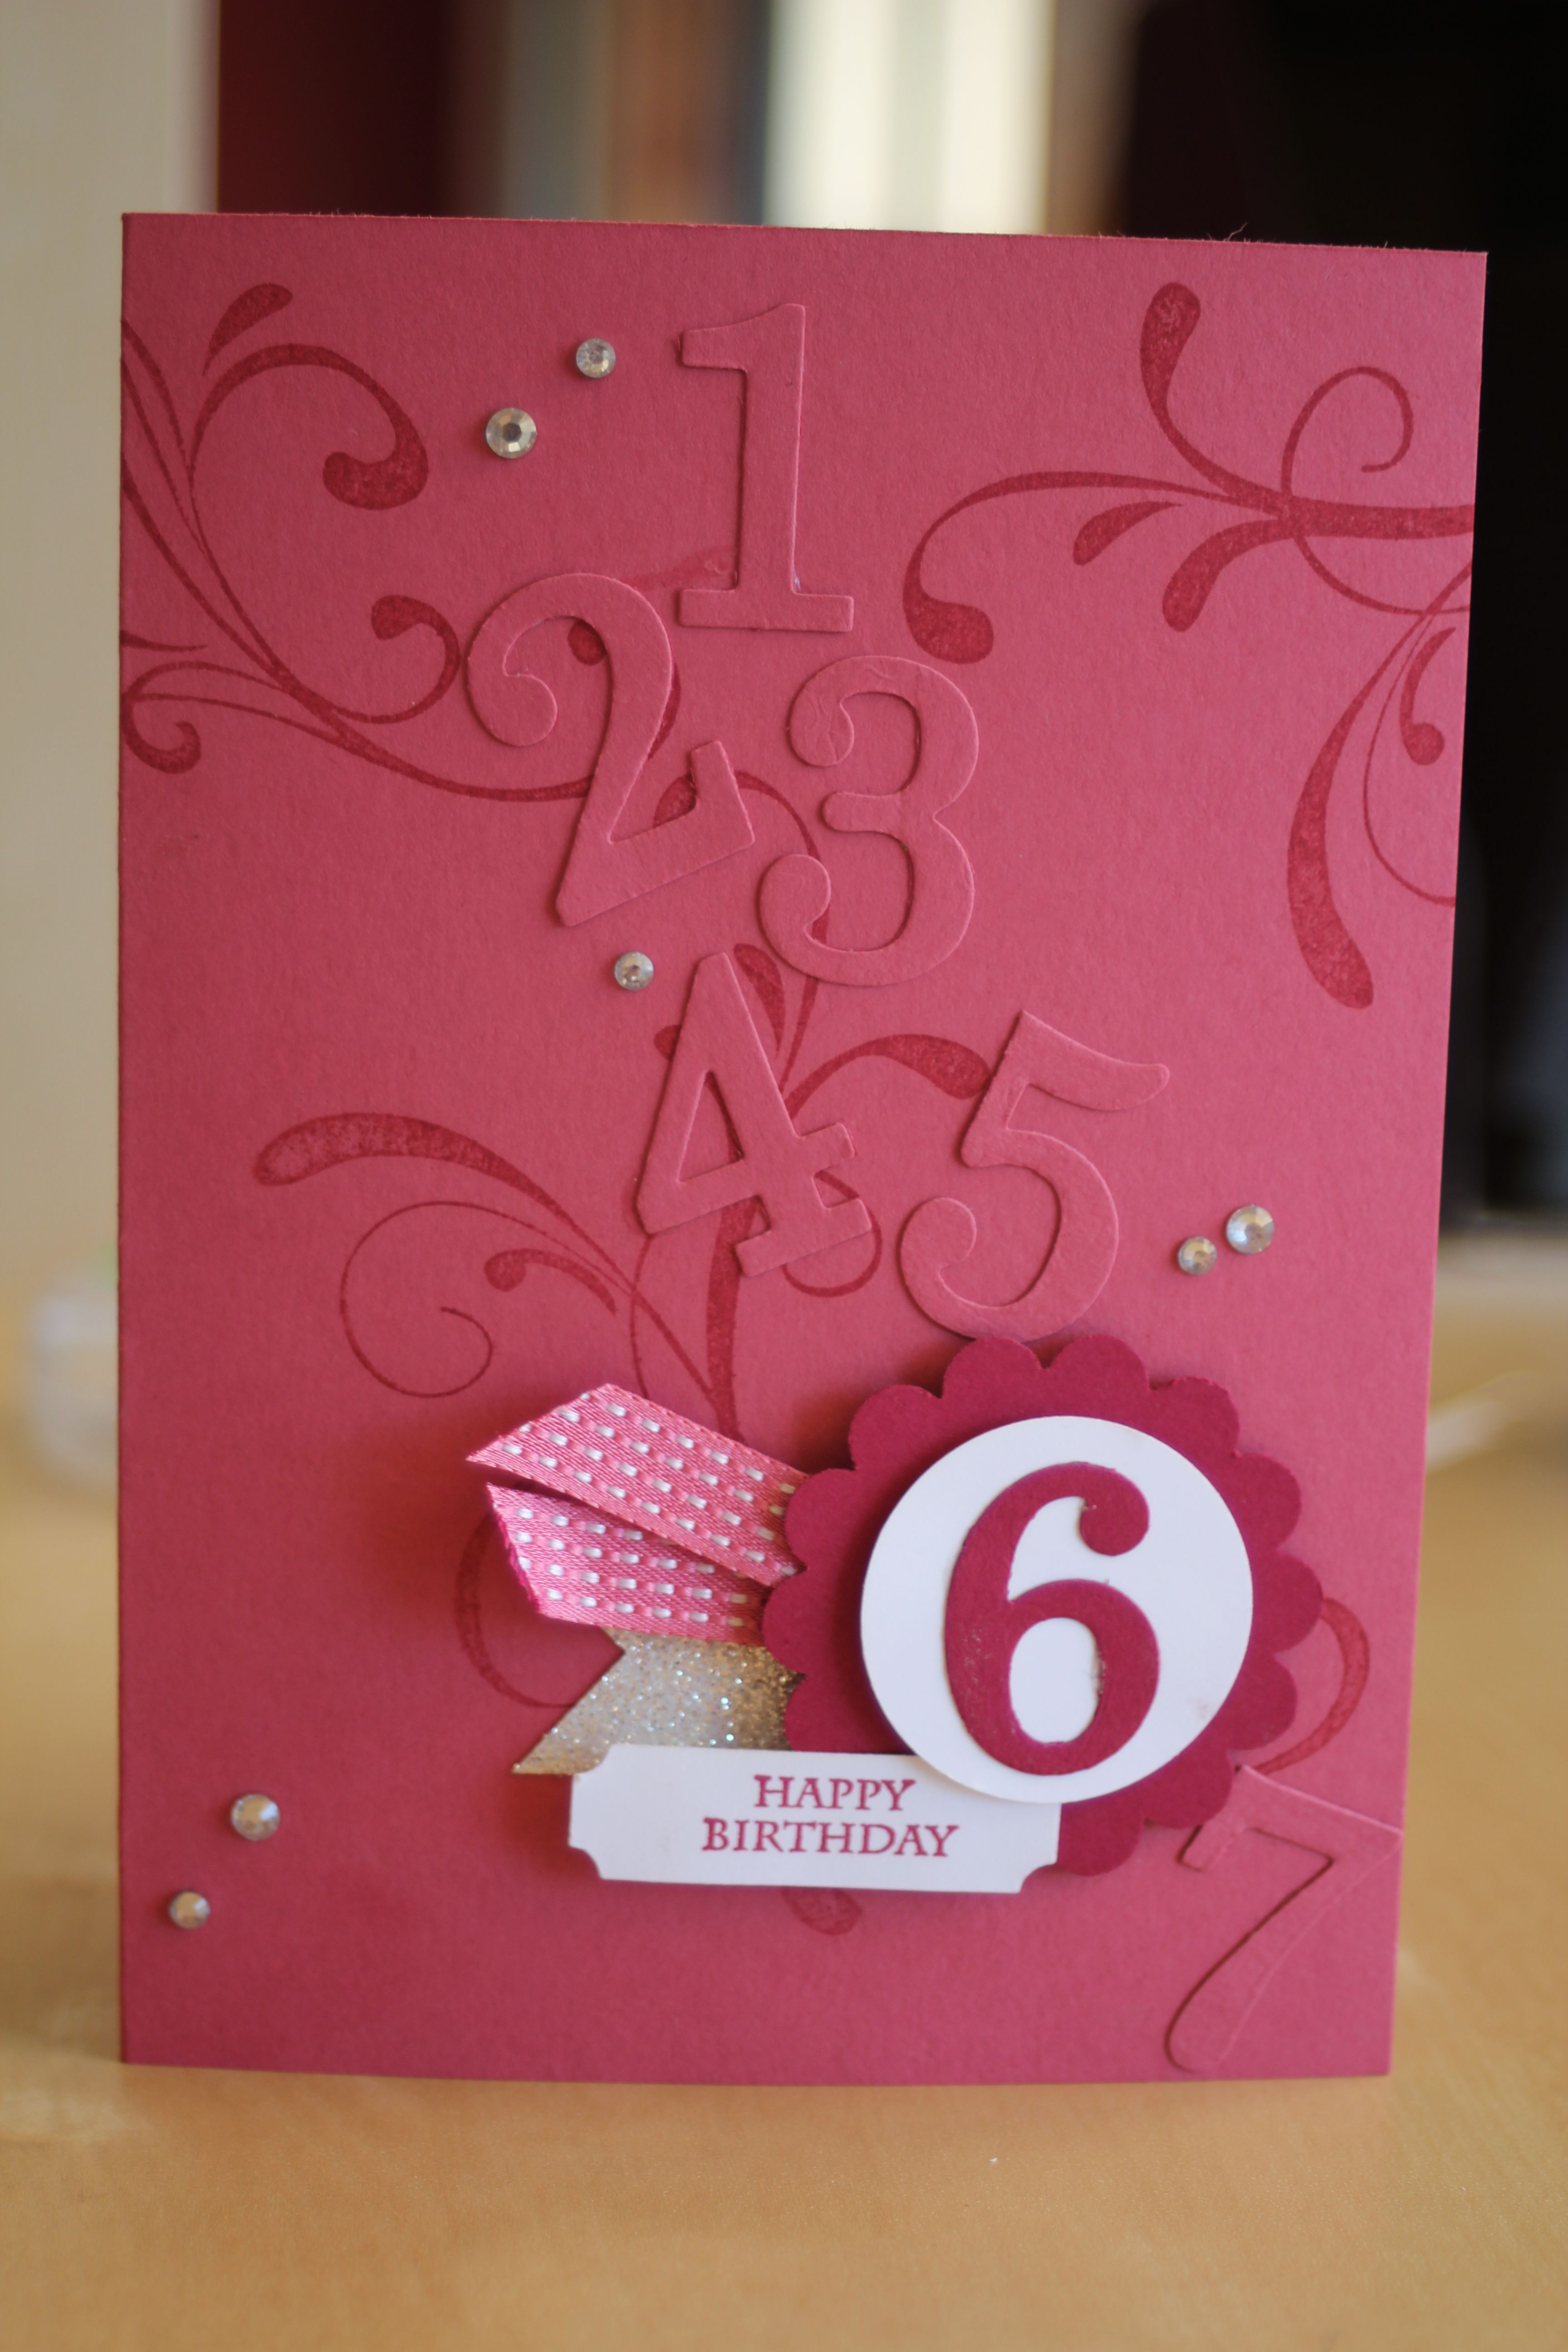 Birthday card for yr old girl made using stampin up products